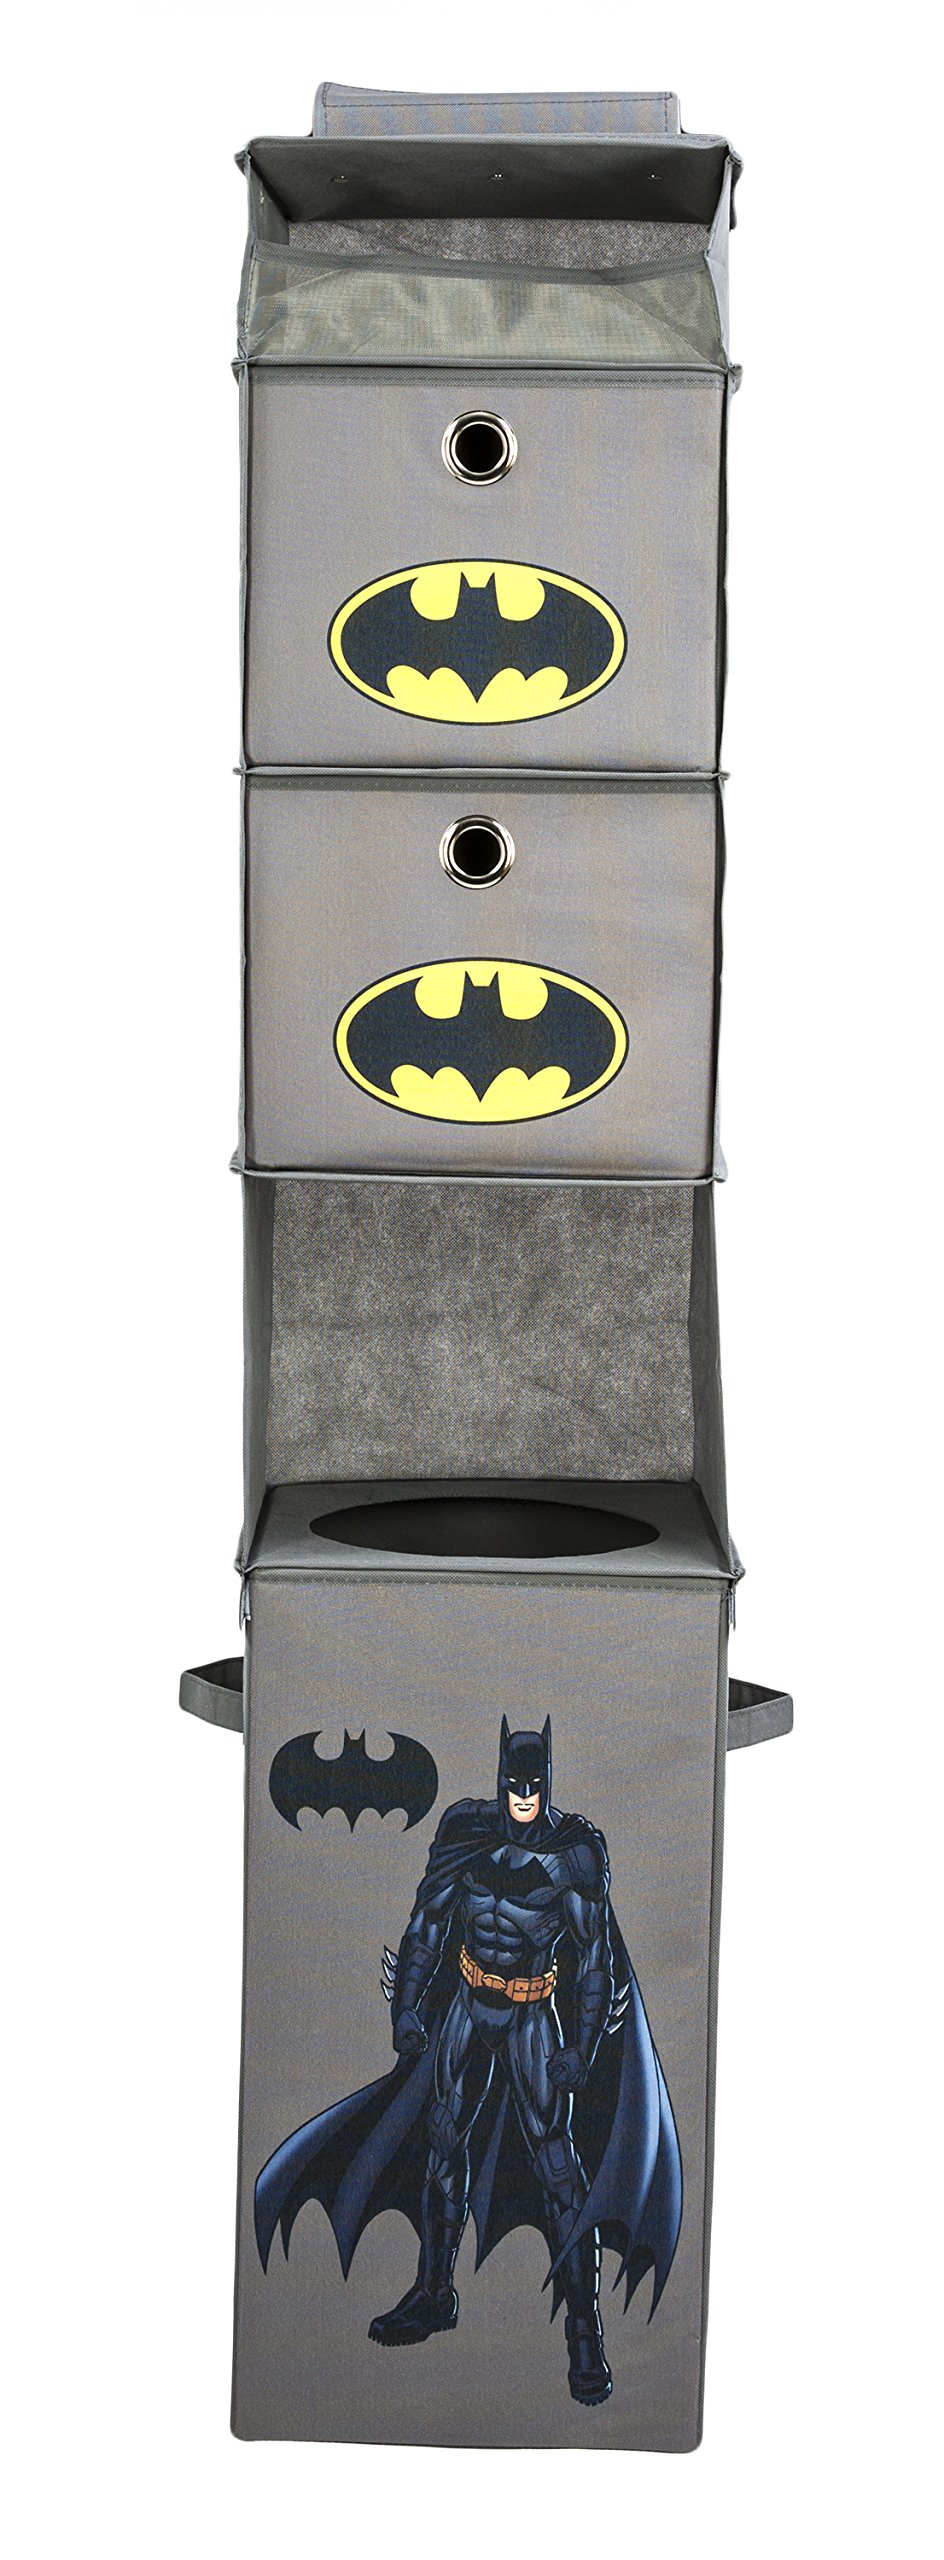 Batman Closet Hanging Organizer – 2 Storage Compartments, 1 Removable Laundry Bin – Collapsible Storage Bin for Toys - Bedroom Organizer - Foldable Bin with Large Capacity. Kid's Room Decor